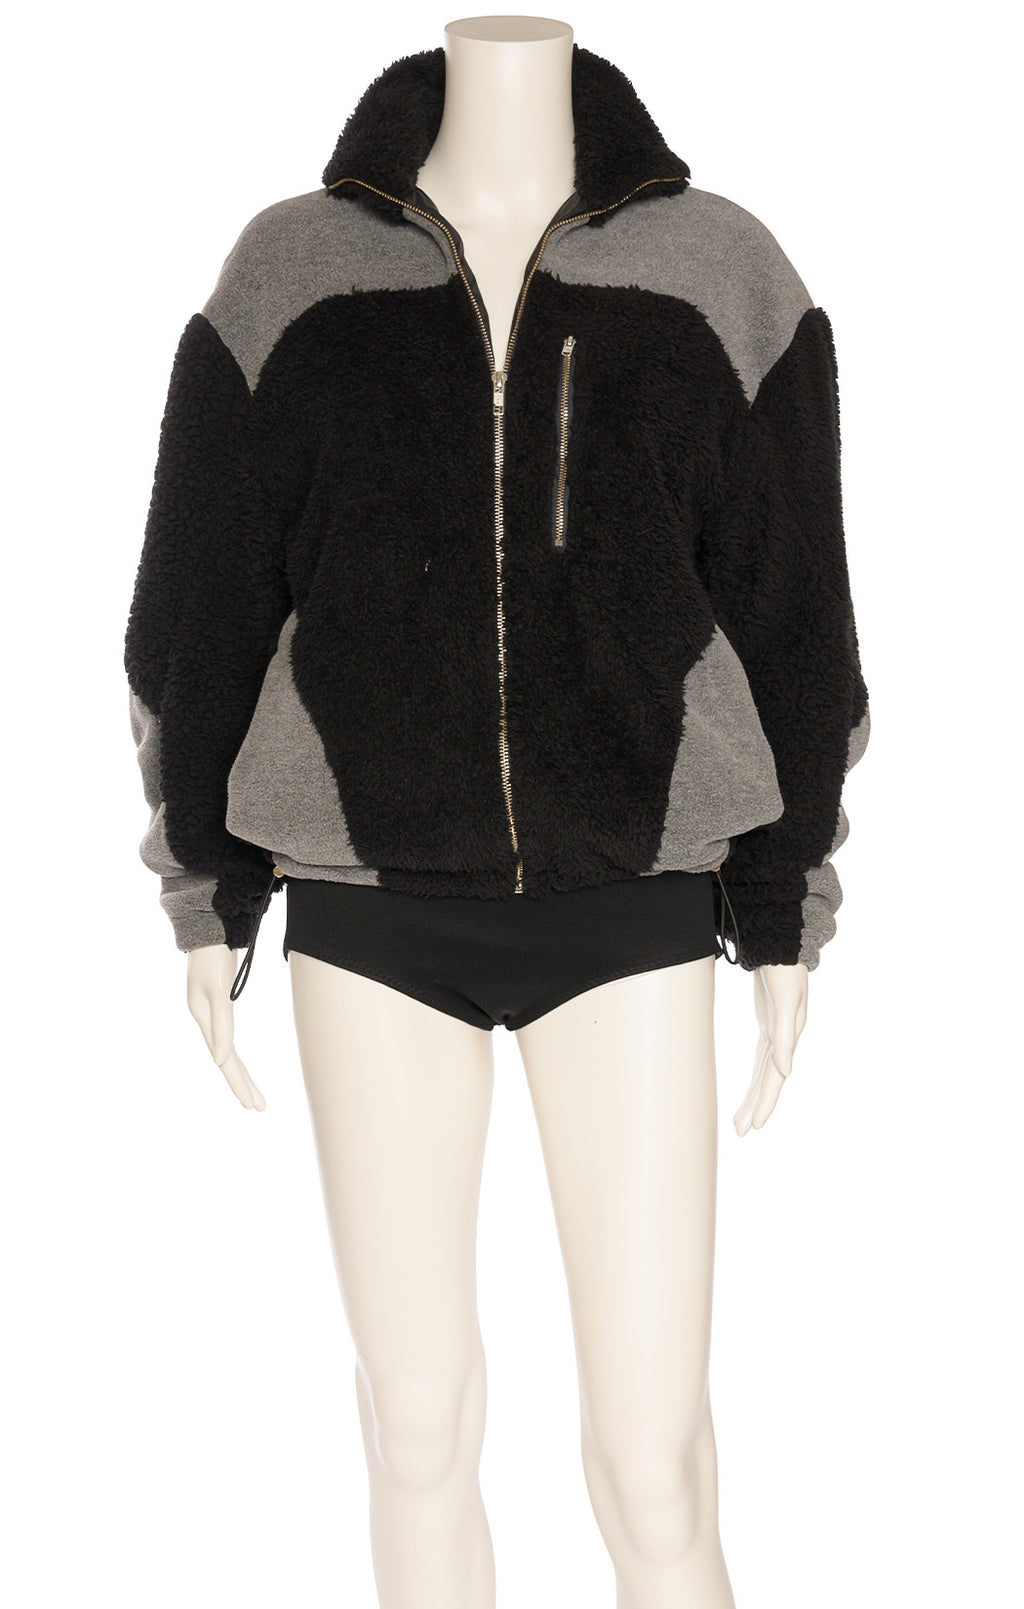 Black and gray faux fur like zippered front jacket with silver hardware and front slit zipper pocket